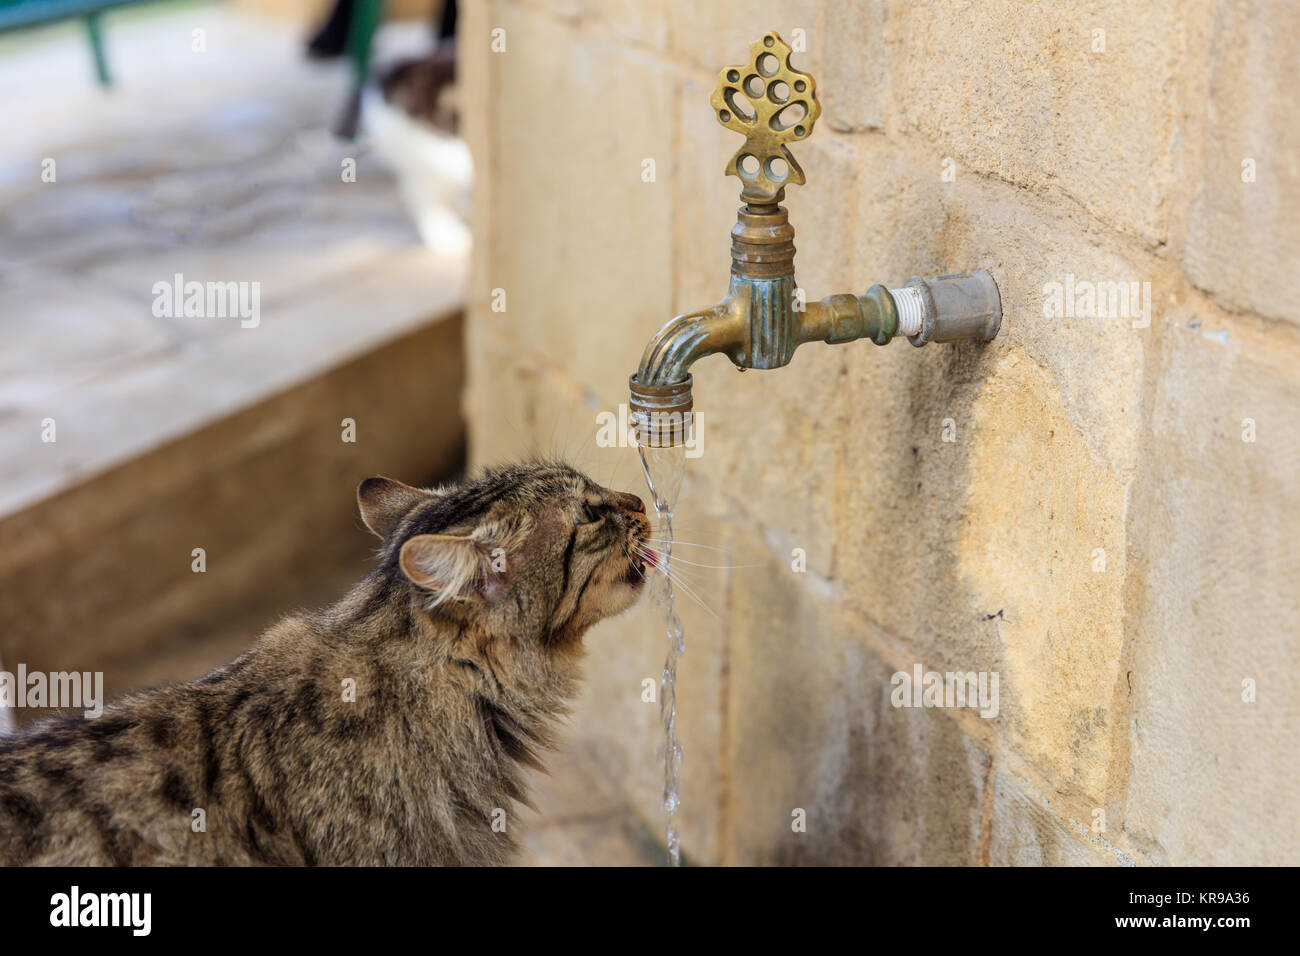 Cat Drinking Tap Stock Photos & Cat Drinking Tap Stock Images - Alamy